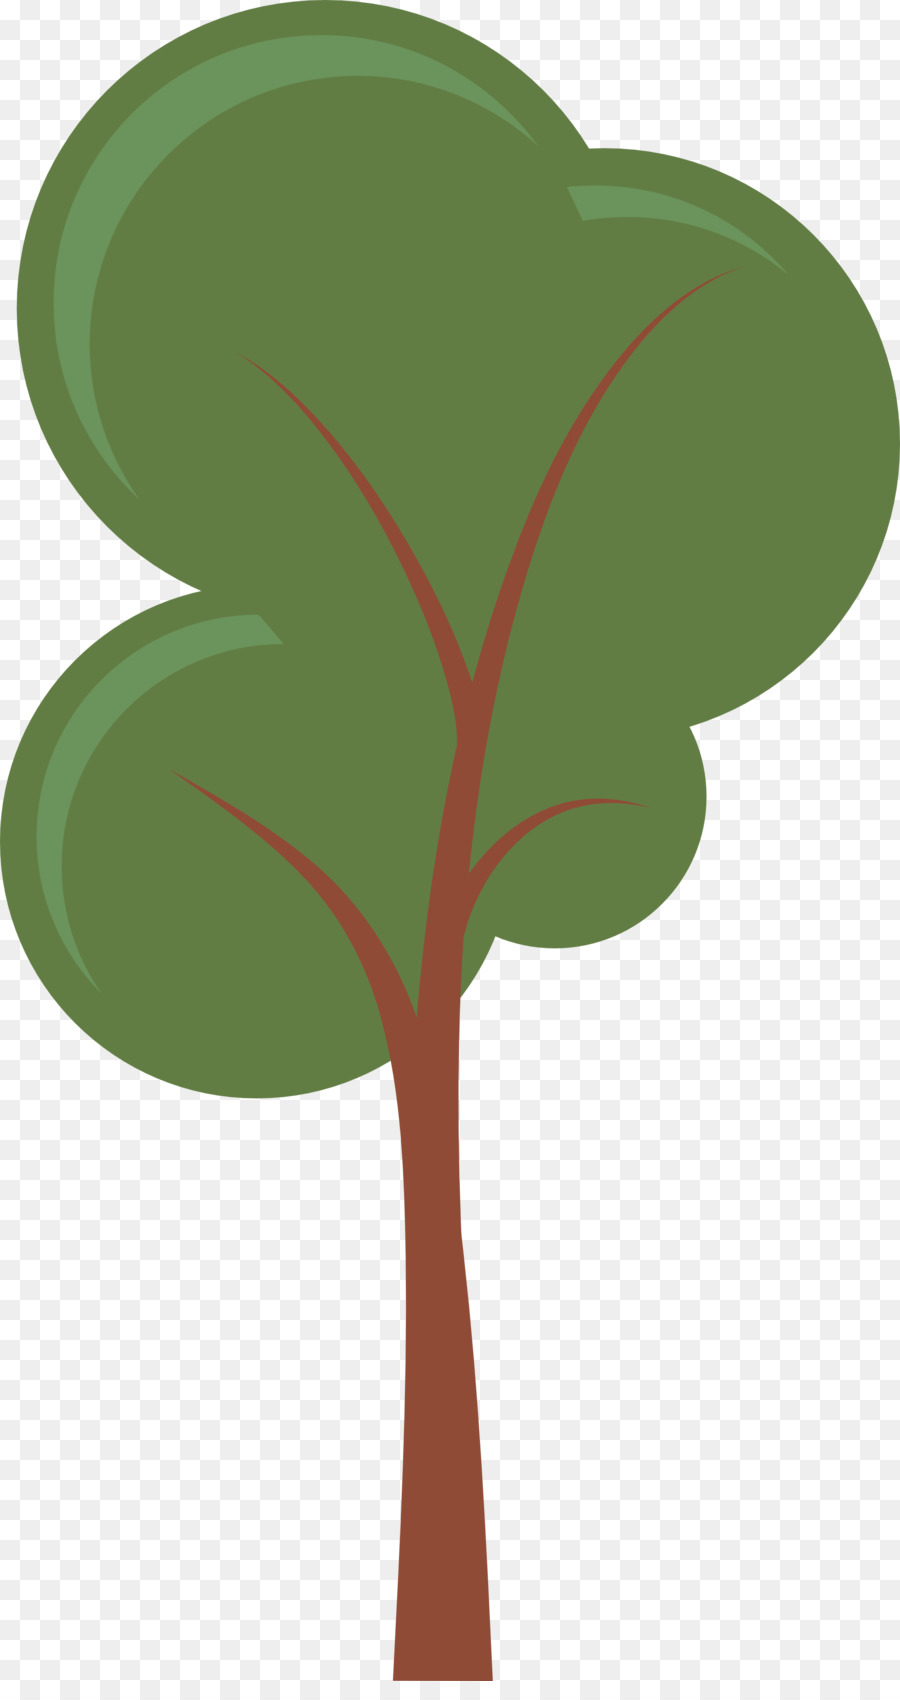 Woodland clipart woodland leaves. Green grass background tree